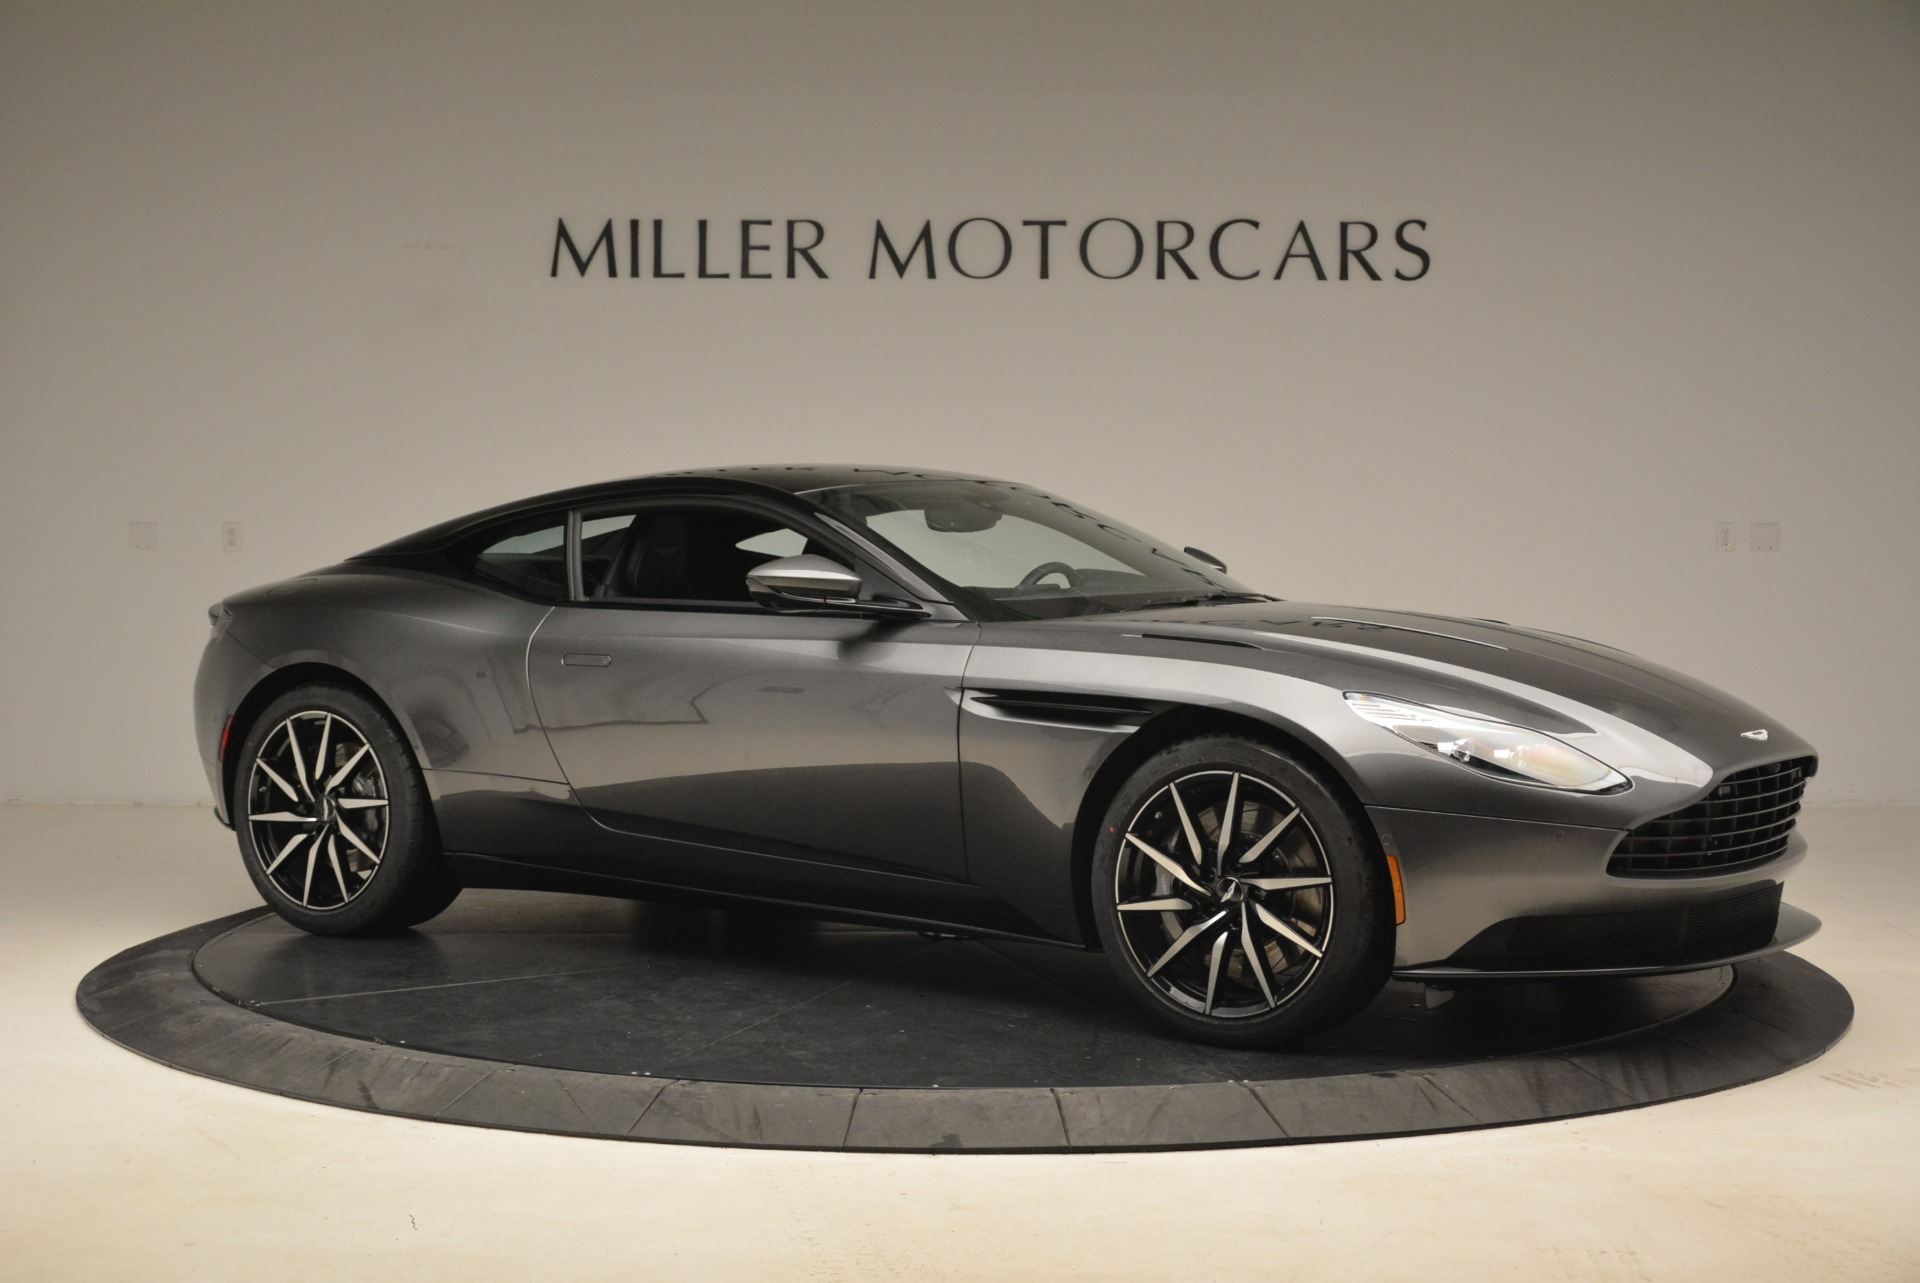 New 2018 Aston Martin DB11 V12 Coupe For Sale In Westport, CT 2228_p10